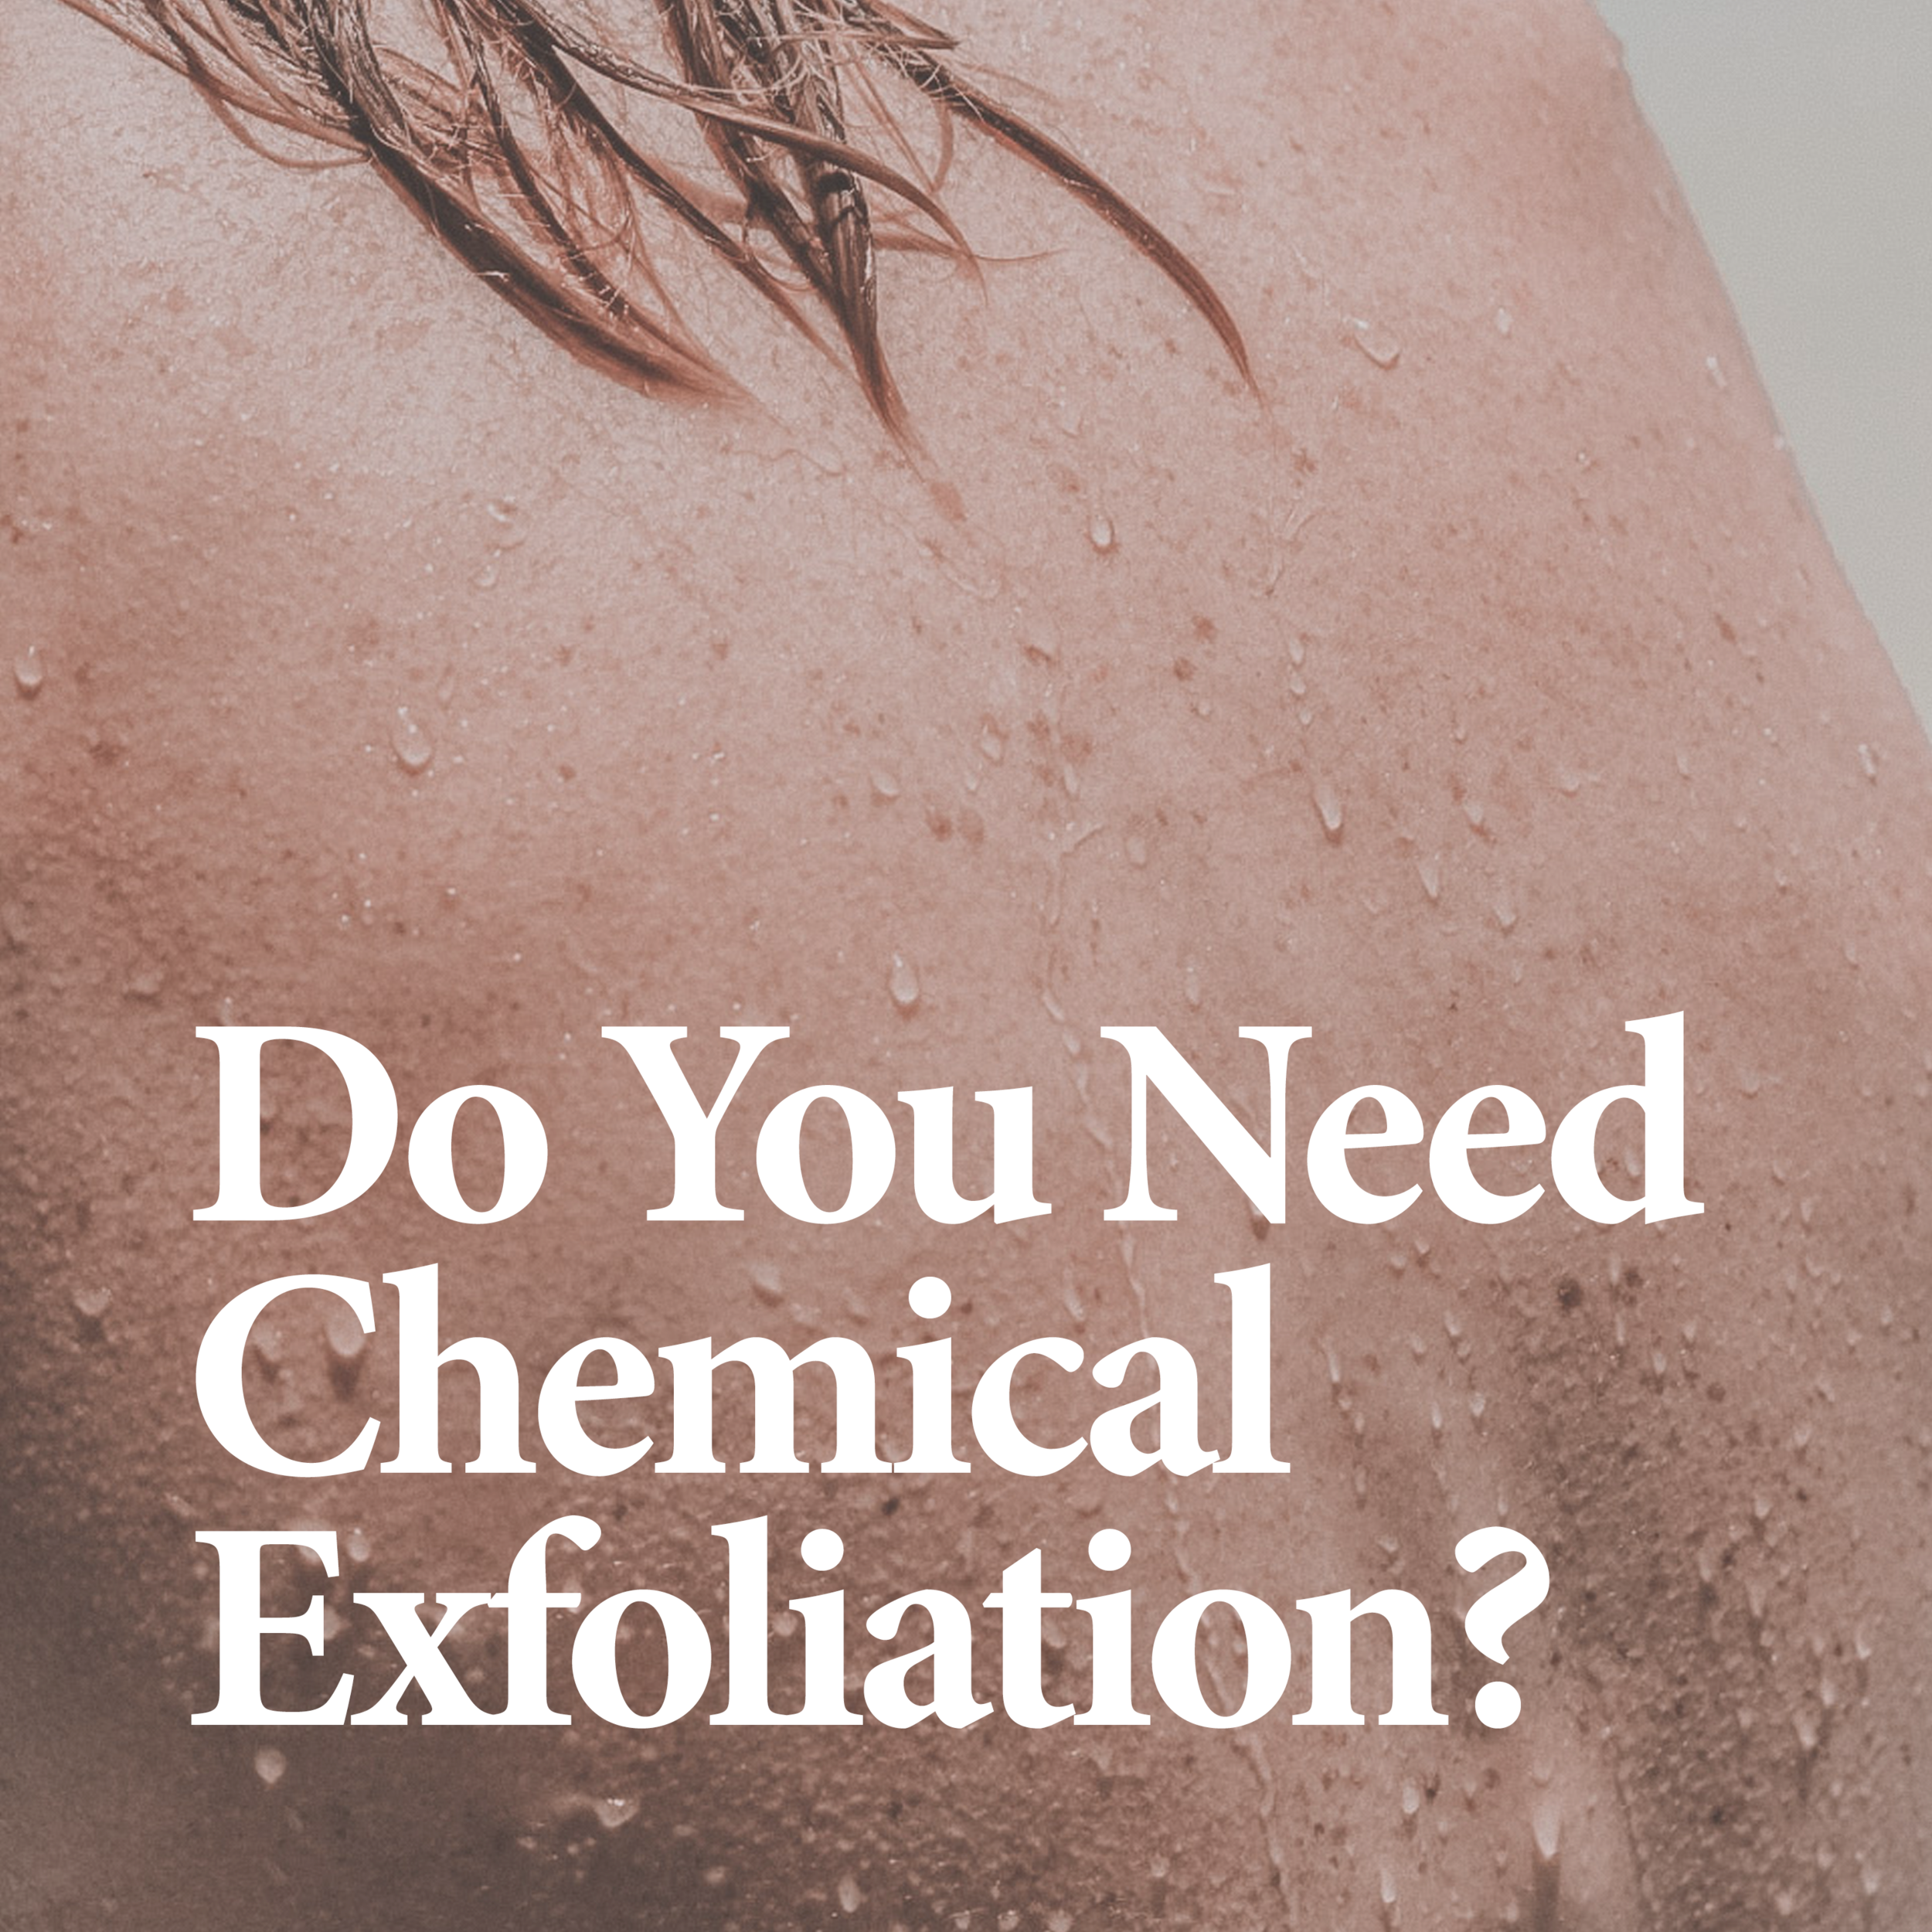 RELATED    Discover more on chemical exfoliation through AHAs and BHAs.